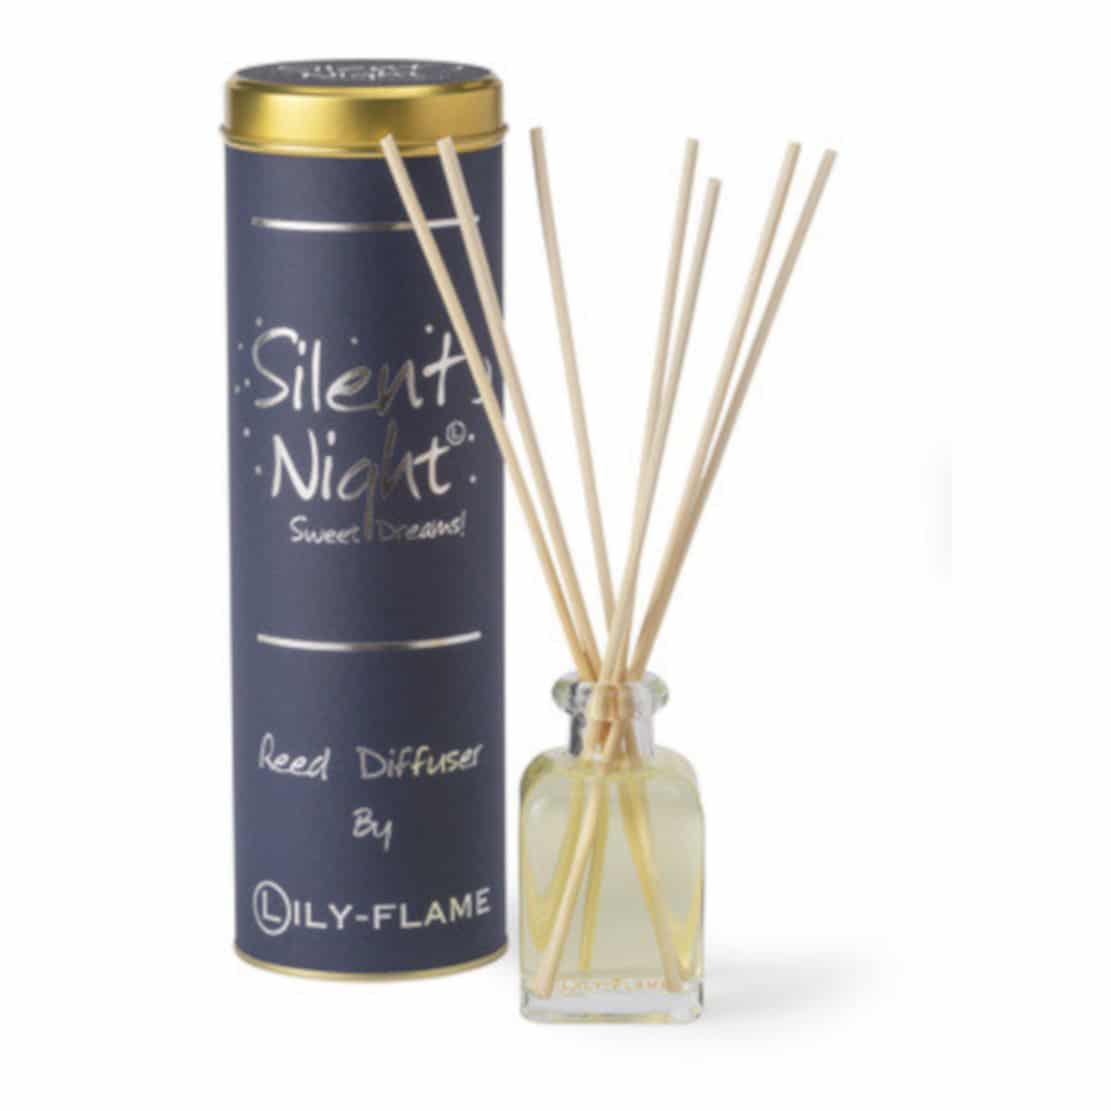 Lily Flame Silent Night Reed Diffuser